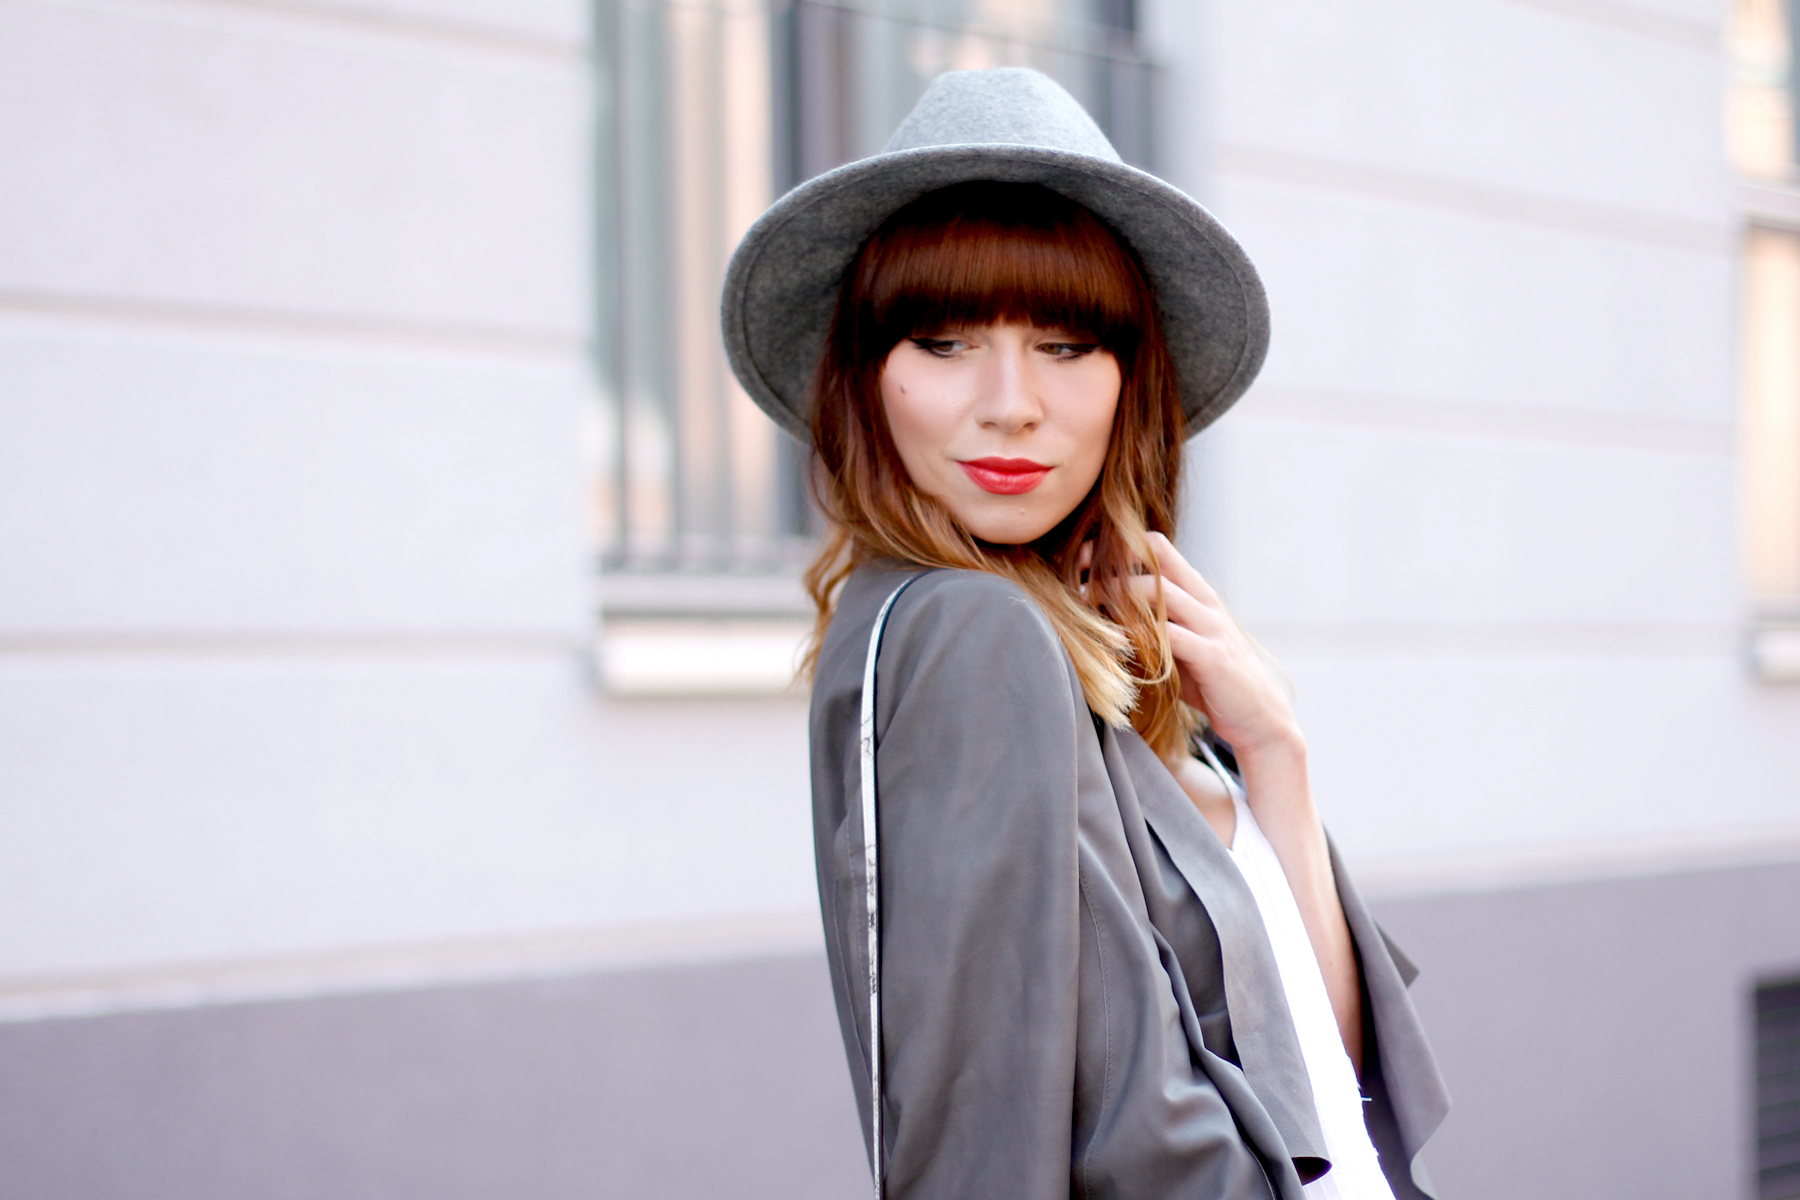 outfit grey hat drykorn leather jacket autumn look minimal chic cute redhead brunette boots fashion blog düsseldorf hannover berlin ricarda schernus cats & dogs 4